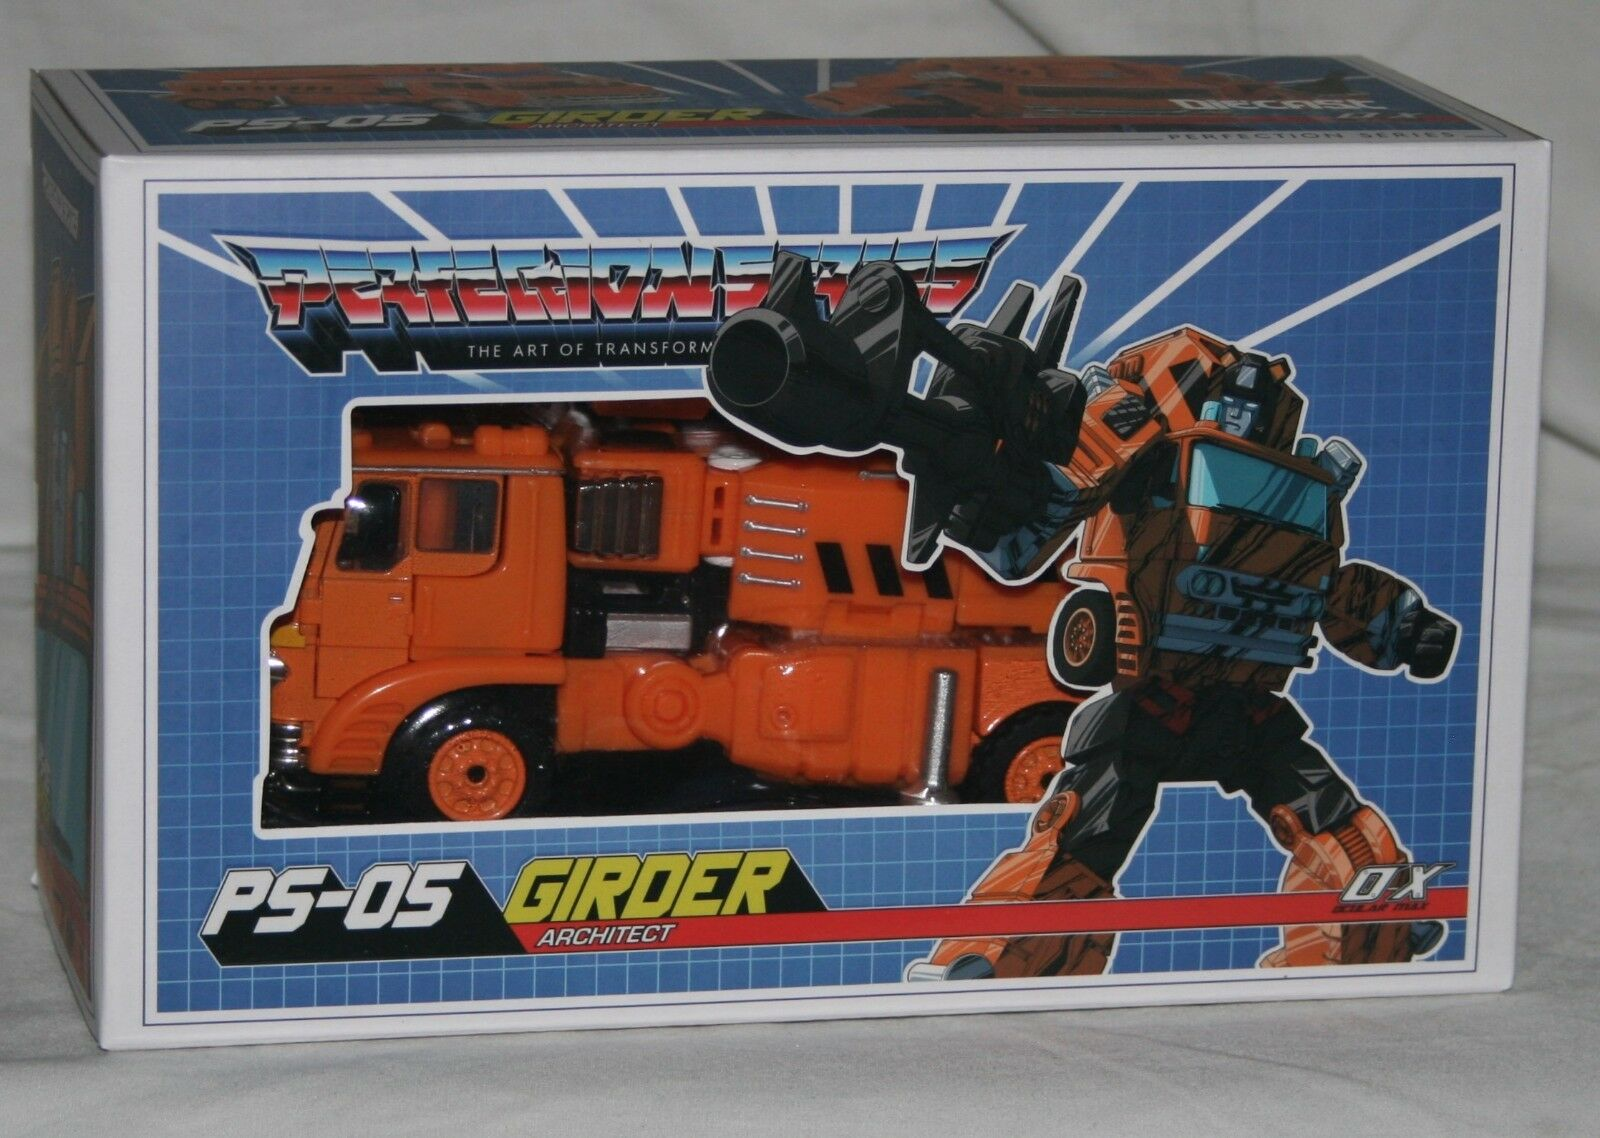 Transformers mastermind creations ps-05 girder misb